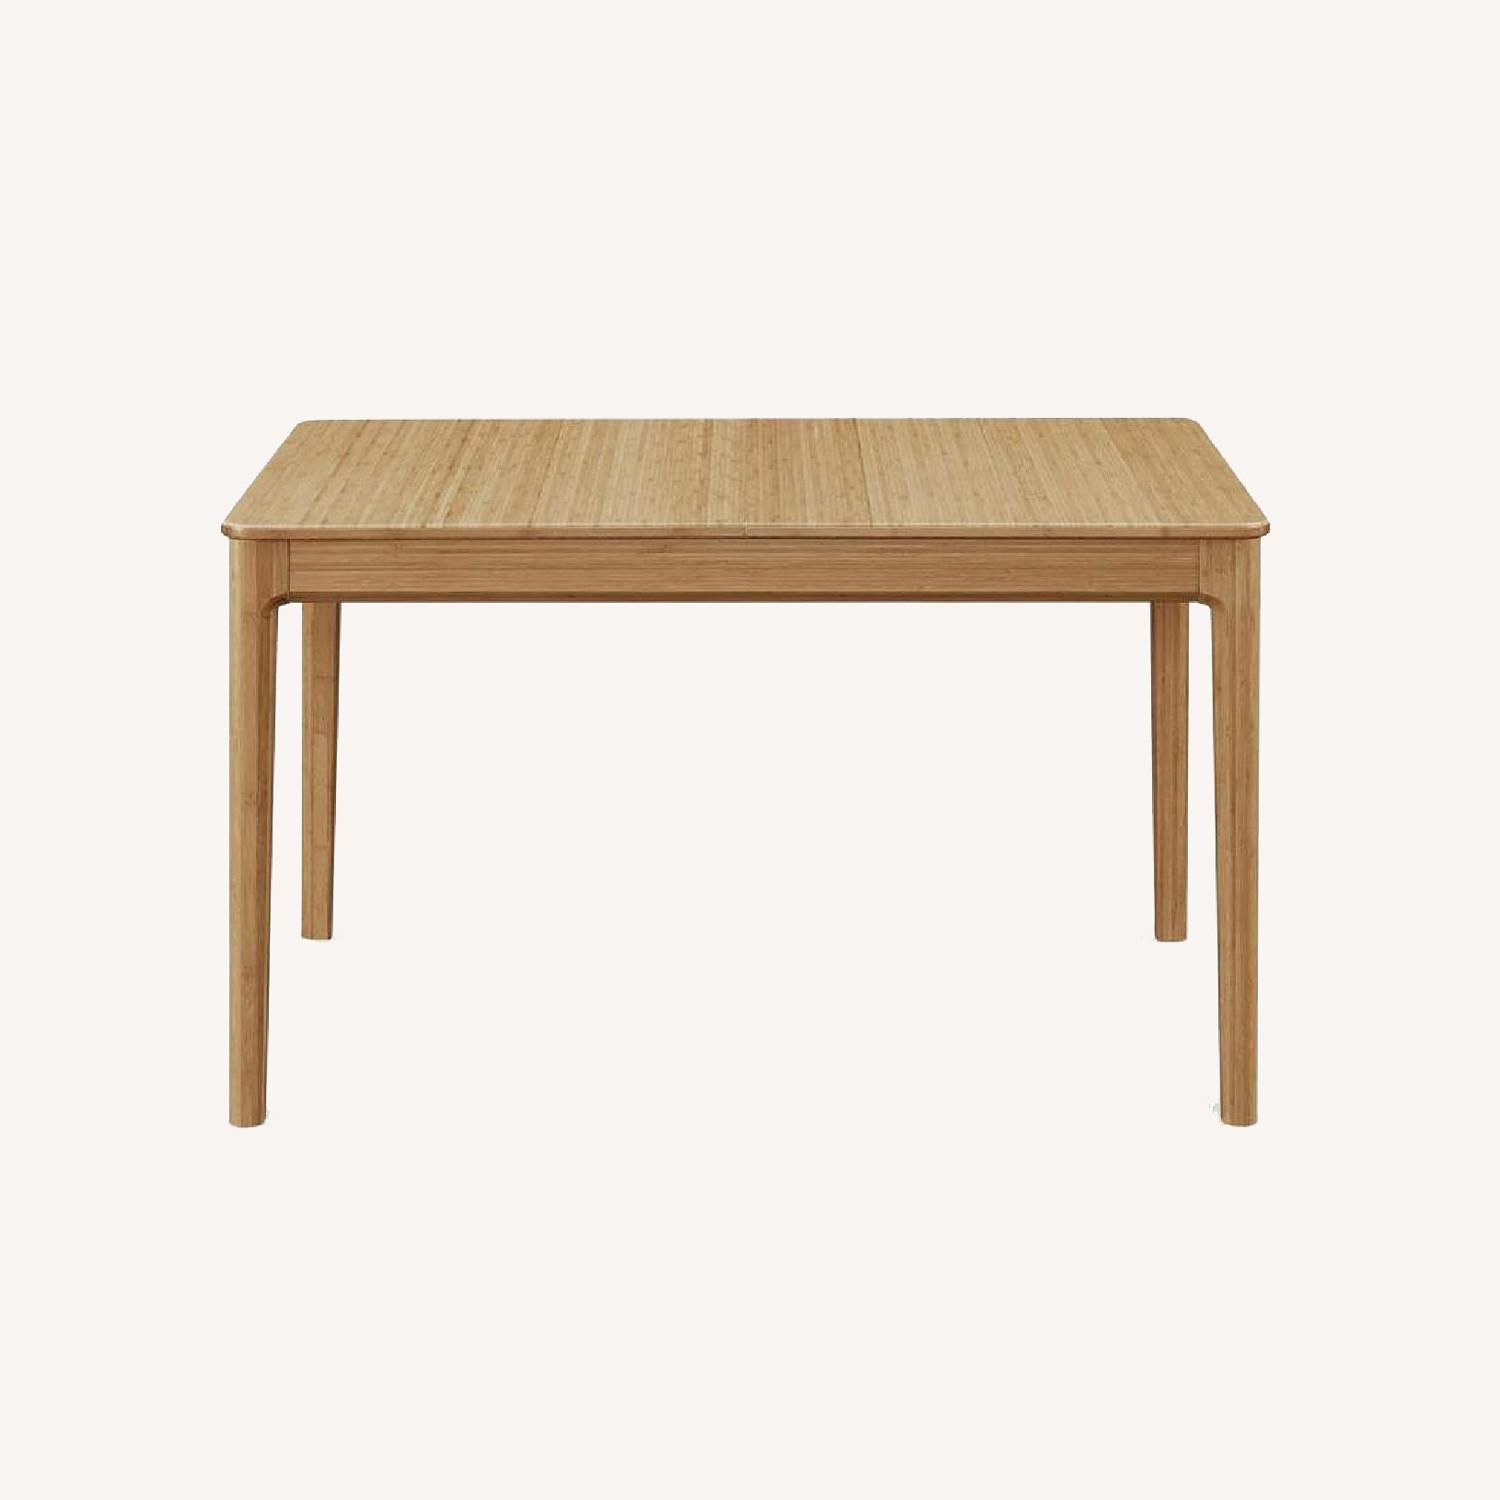 Bamboo Extendable Dining Table - image-0